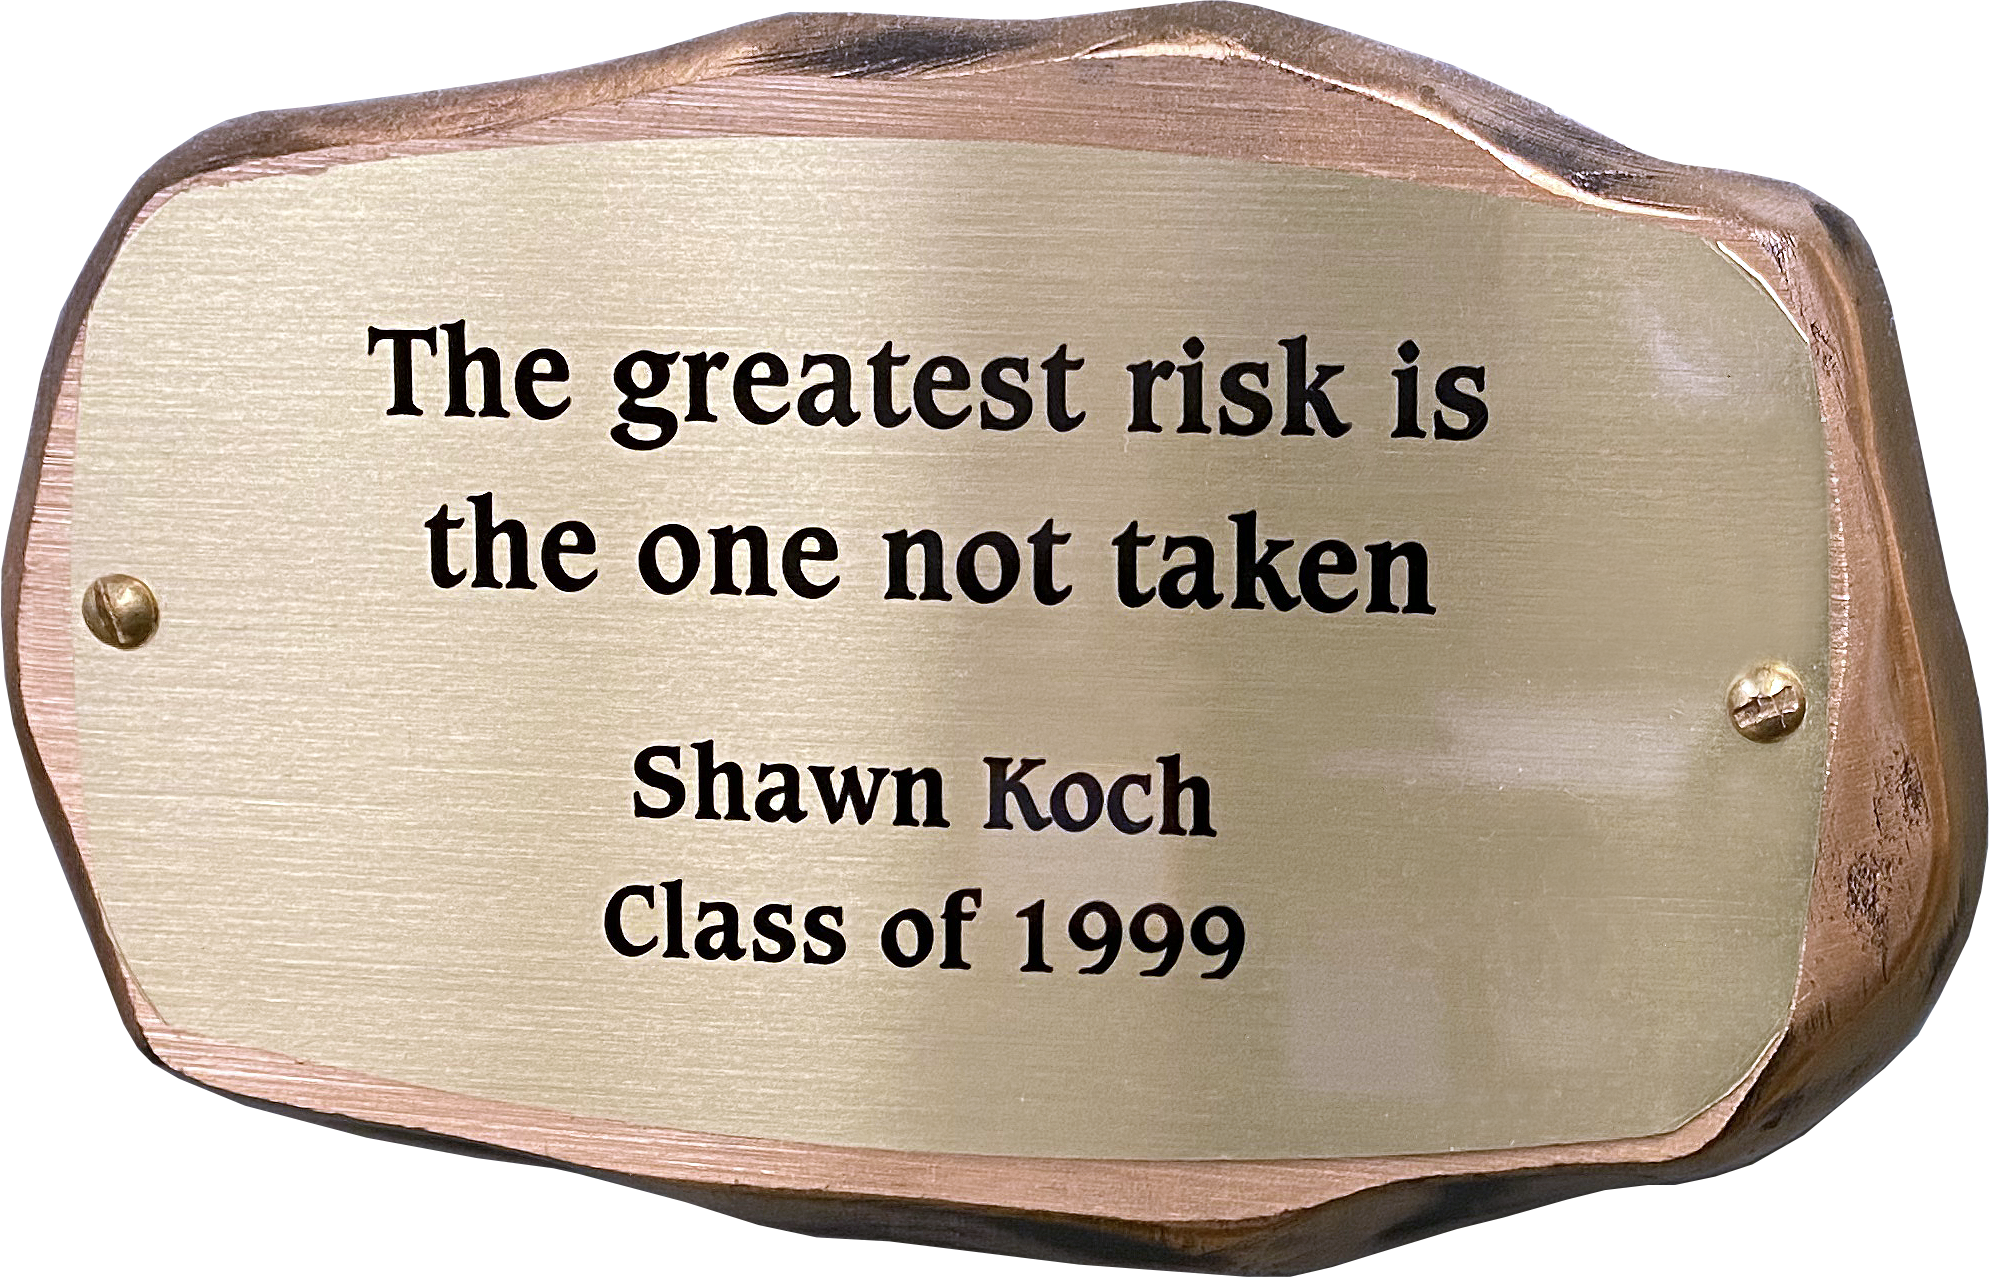 Inscribed bronze plaque in the shape of a rock with text on it reading: The greatest risk is the one not taken. Shawn Koch. Class of 1999